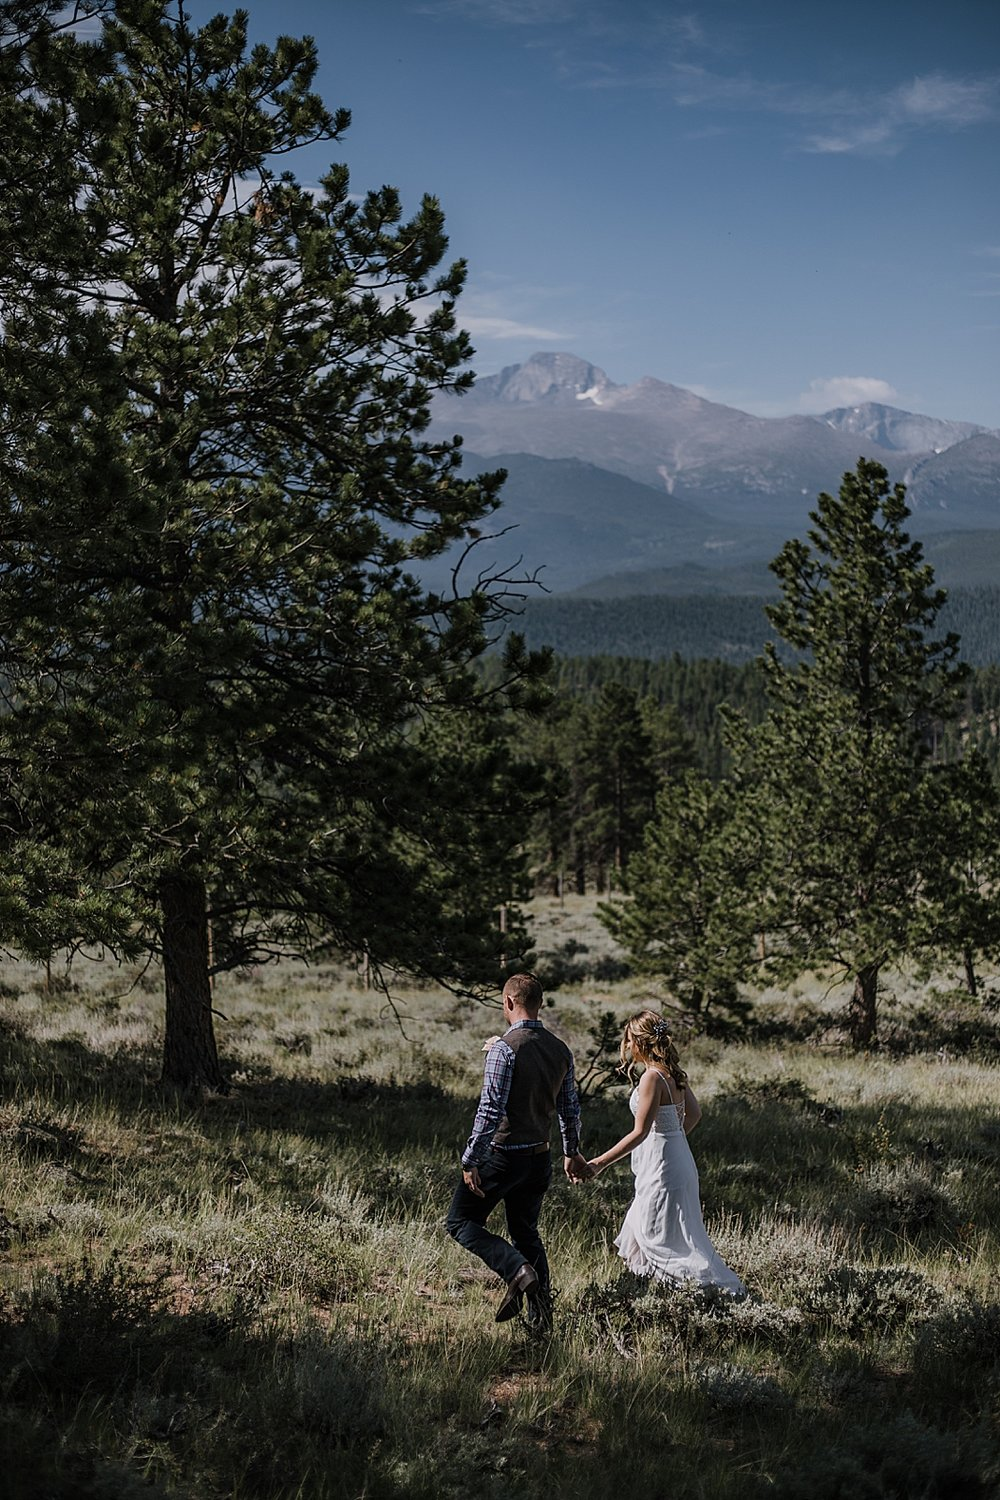 bride and groom hiking, RMNP elopement ceremony, rocky mountain national park elopement, 3M curves elopement, self solemnizing, self solemnization, long's peak, summer elopement, estes park elopement